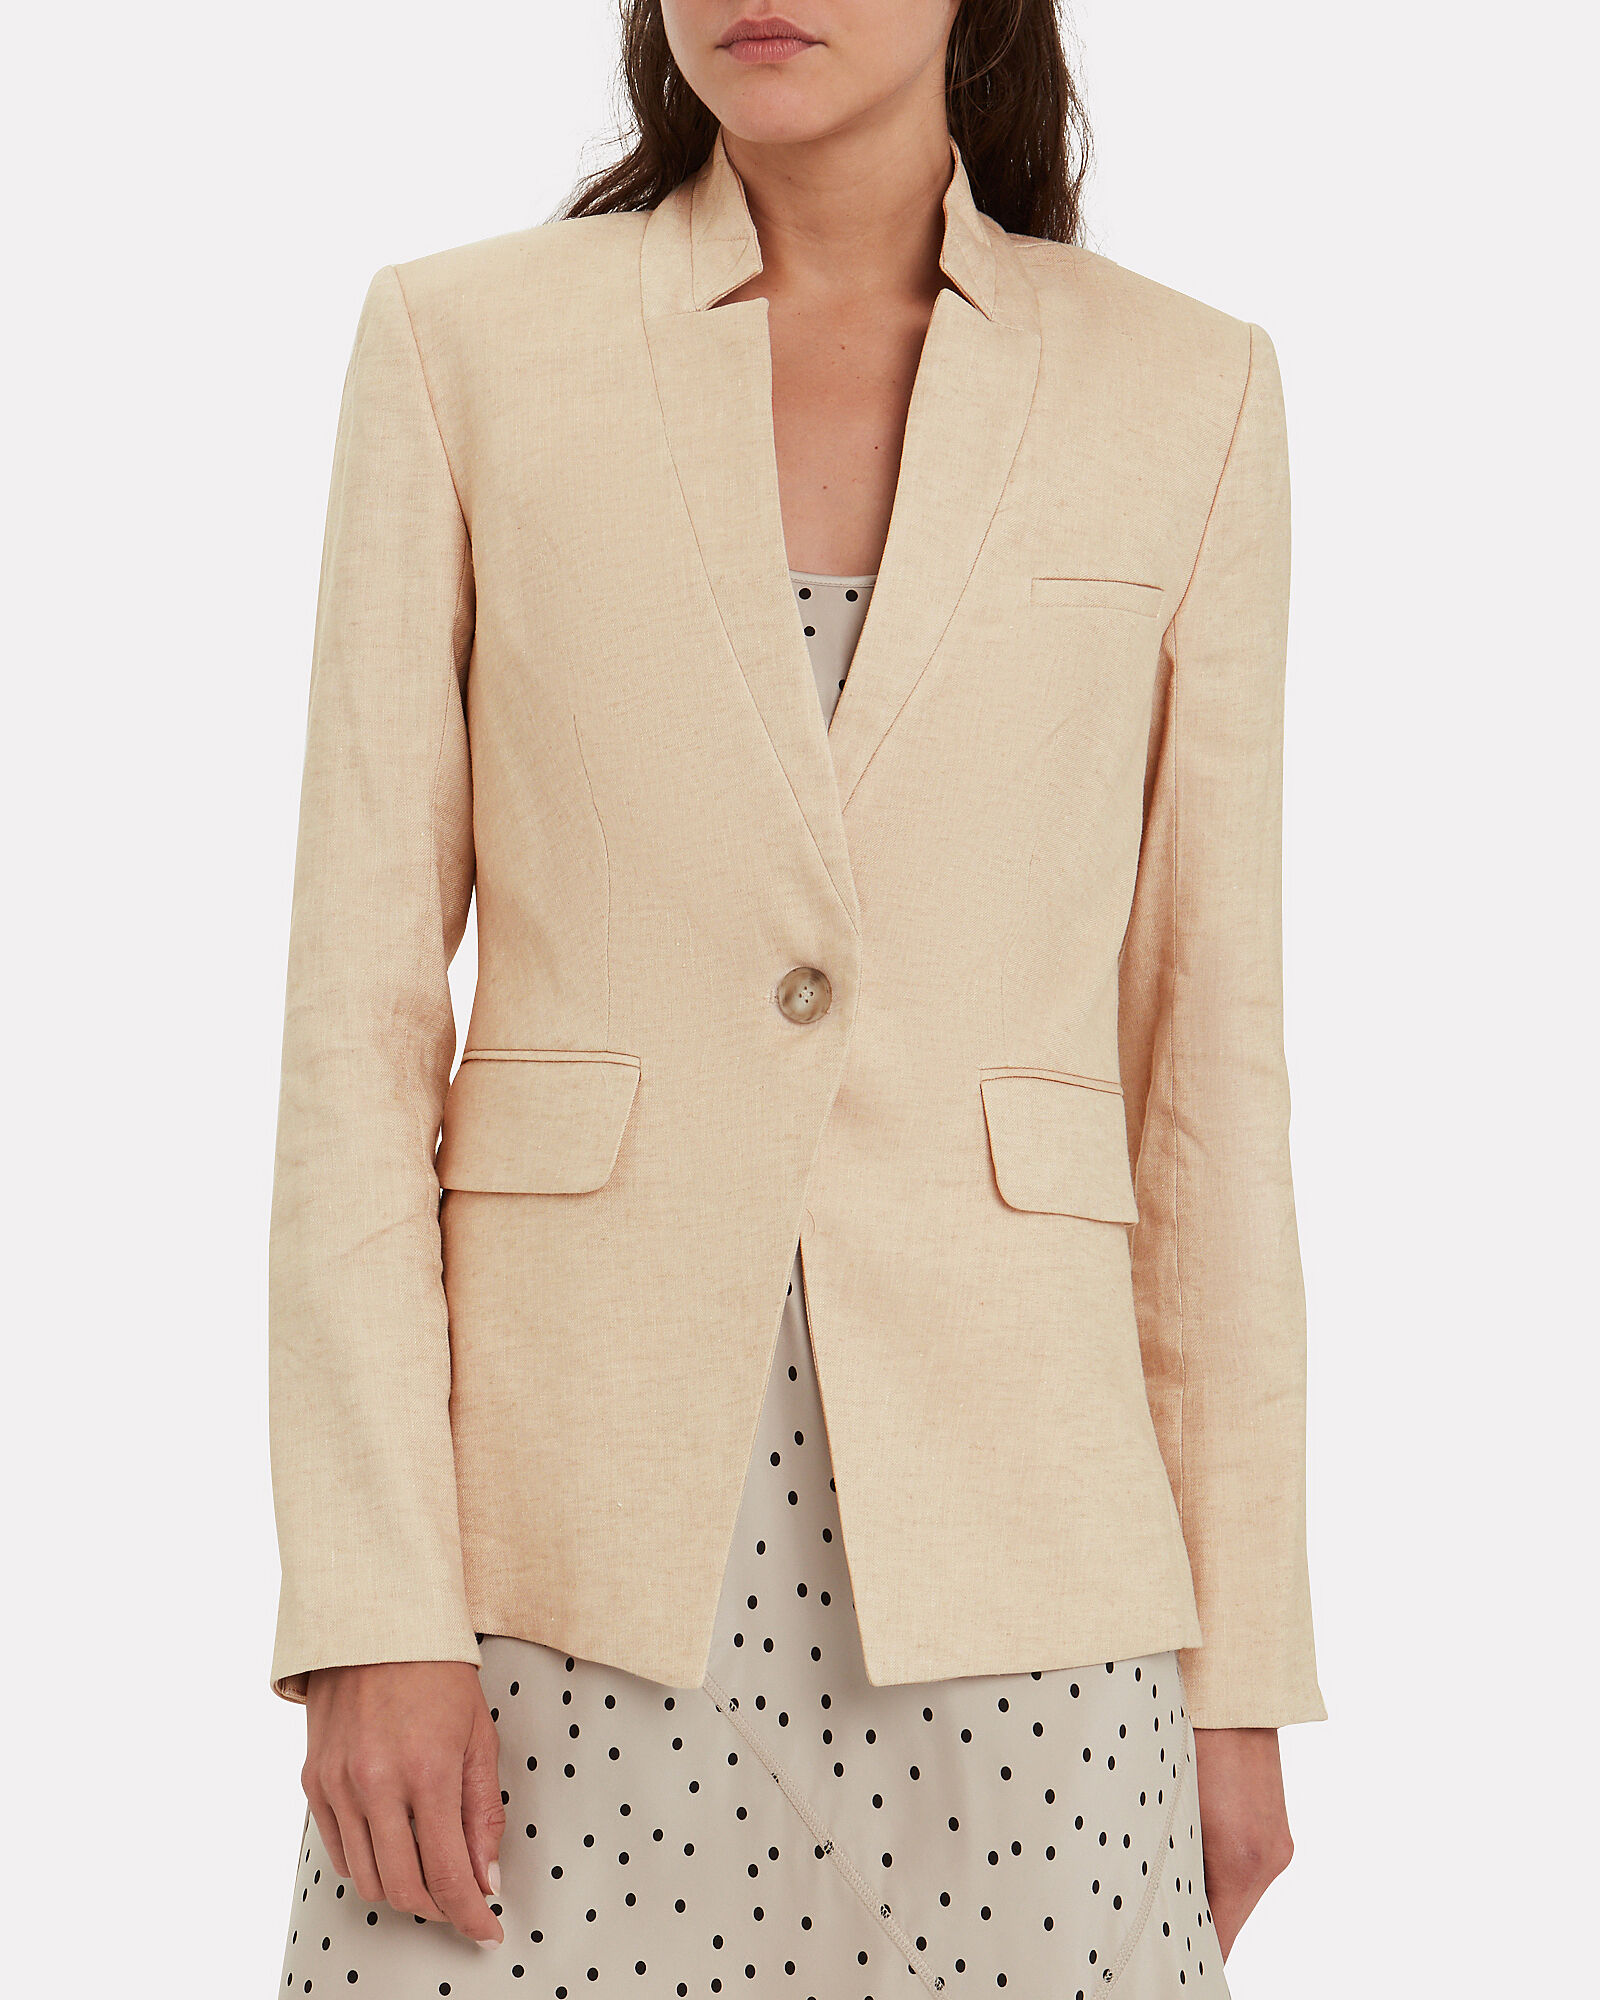 Upcollar Single Breasted Dickey Jacket, BEIGE, hi-res